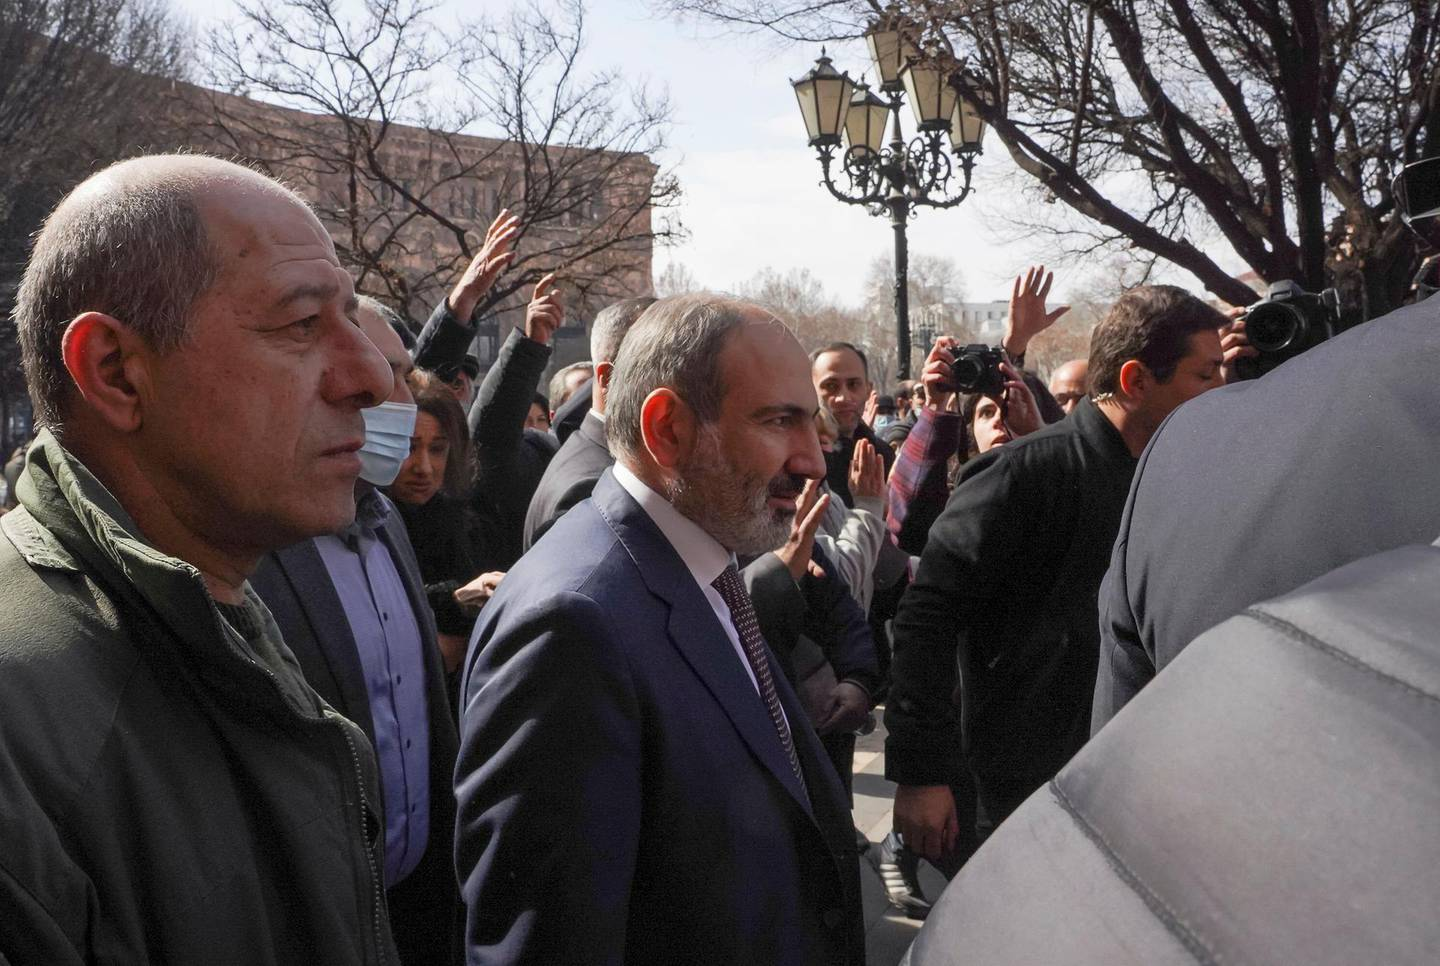 Armenian Prime Minister Nikol Pashinyan meets with participants of a gathering after he called on followers to rally in the centre of Yerevan, Armenia February 25, 2021. Pashinyan warned of an attempted military coup against him after the army demanded he and his government resign. REUTERS/Artem Mikryukov